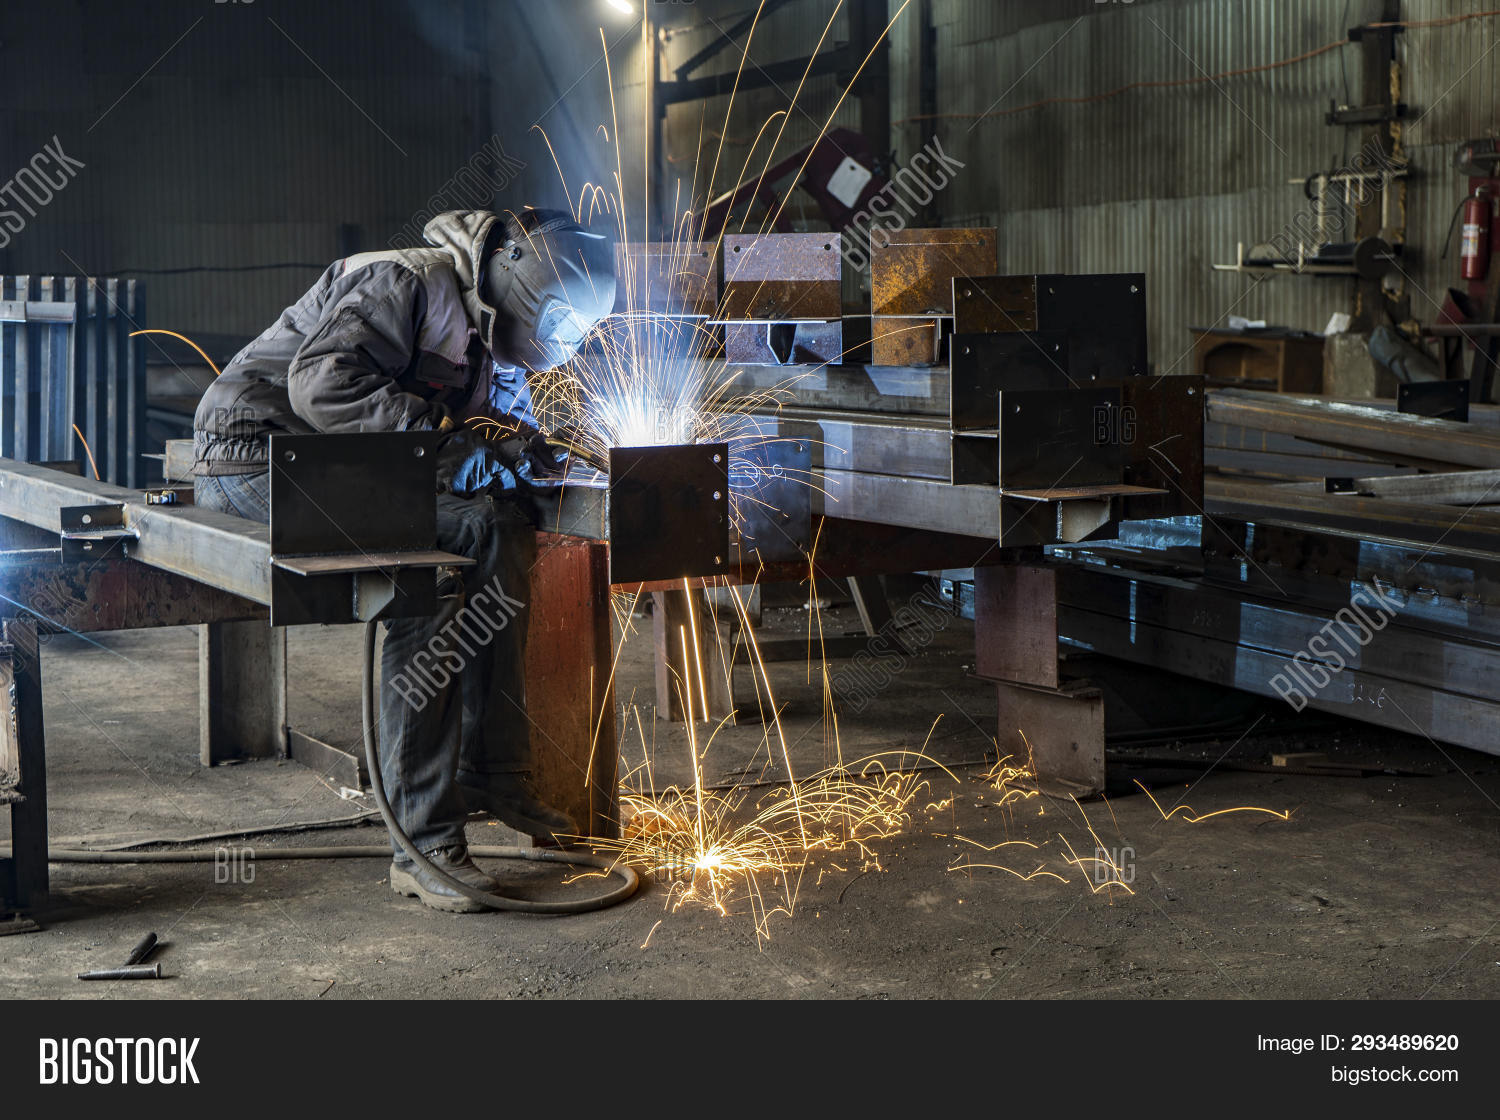 Welding with sparks by Process fluxed cored arc welding , Industrial steel welder part in factory welder Industrial automotive part in factory.